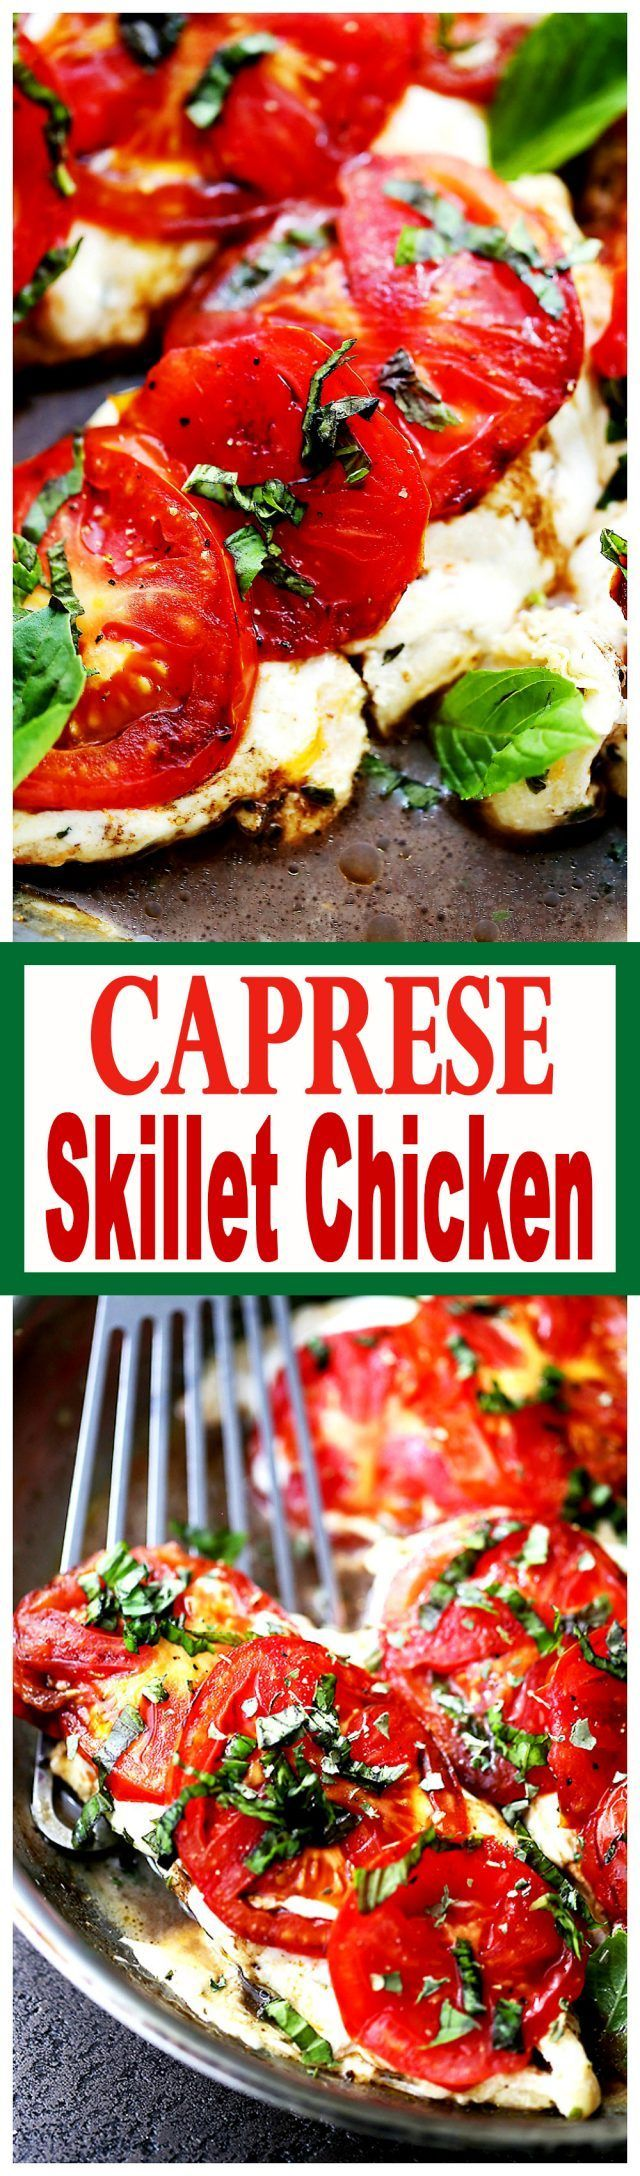 Caprese Skillet Chicken Recipe - Pan-seared chicken topped with melting…